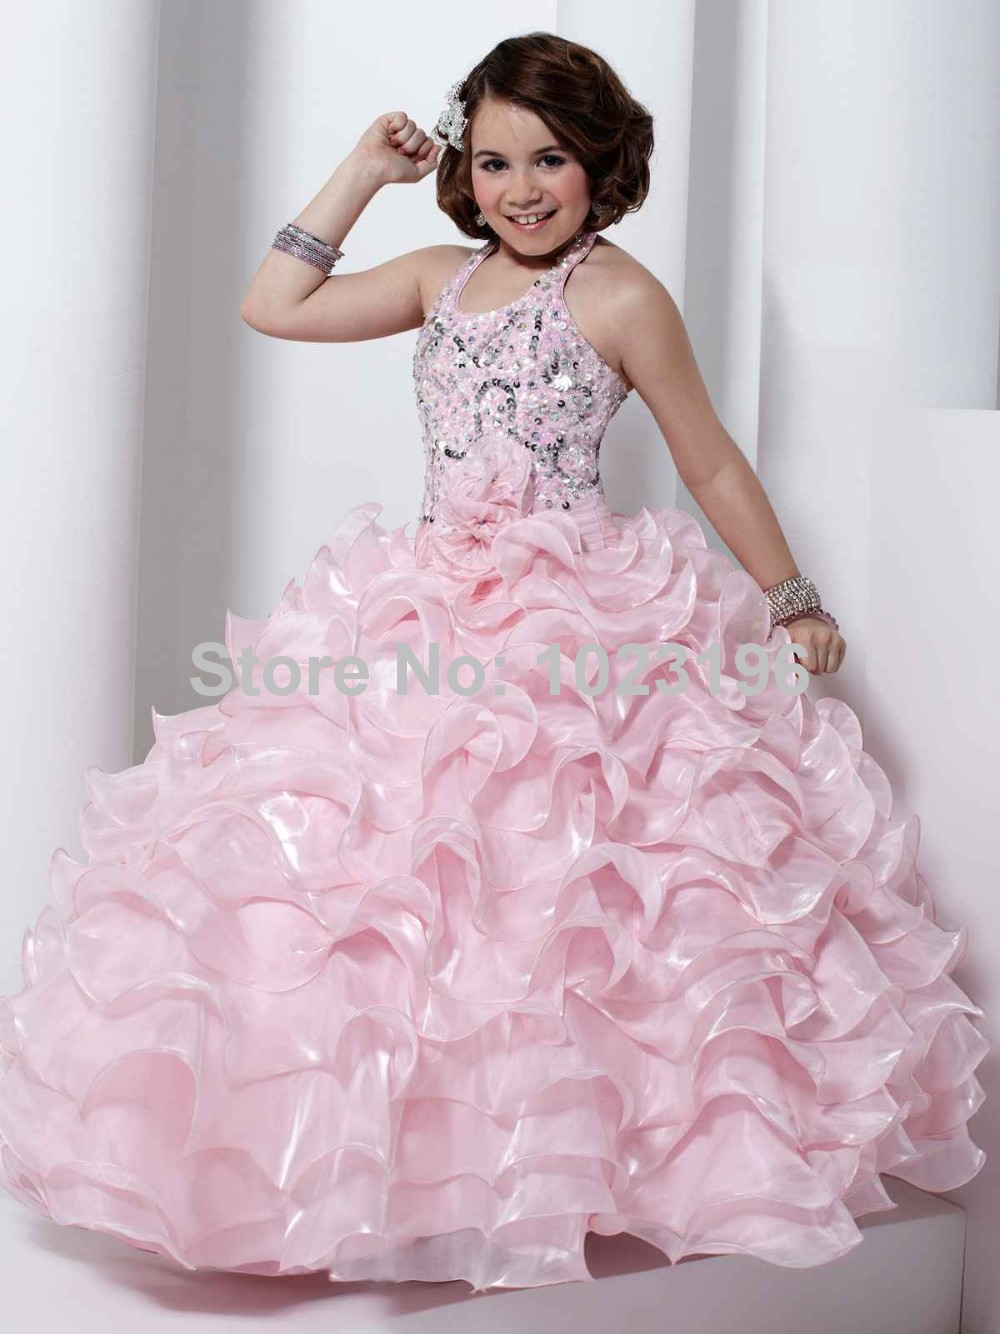 2015 Flower Girl Dresses prom dress children Pink Organza Girl Pageant Dresses Halter Sequins Sleeveless Ball Gown Long(China (Mainland))